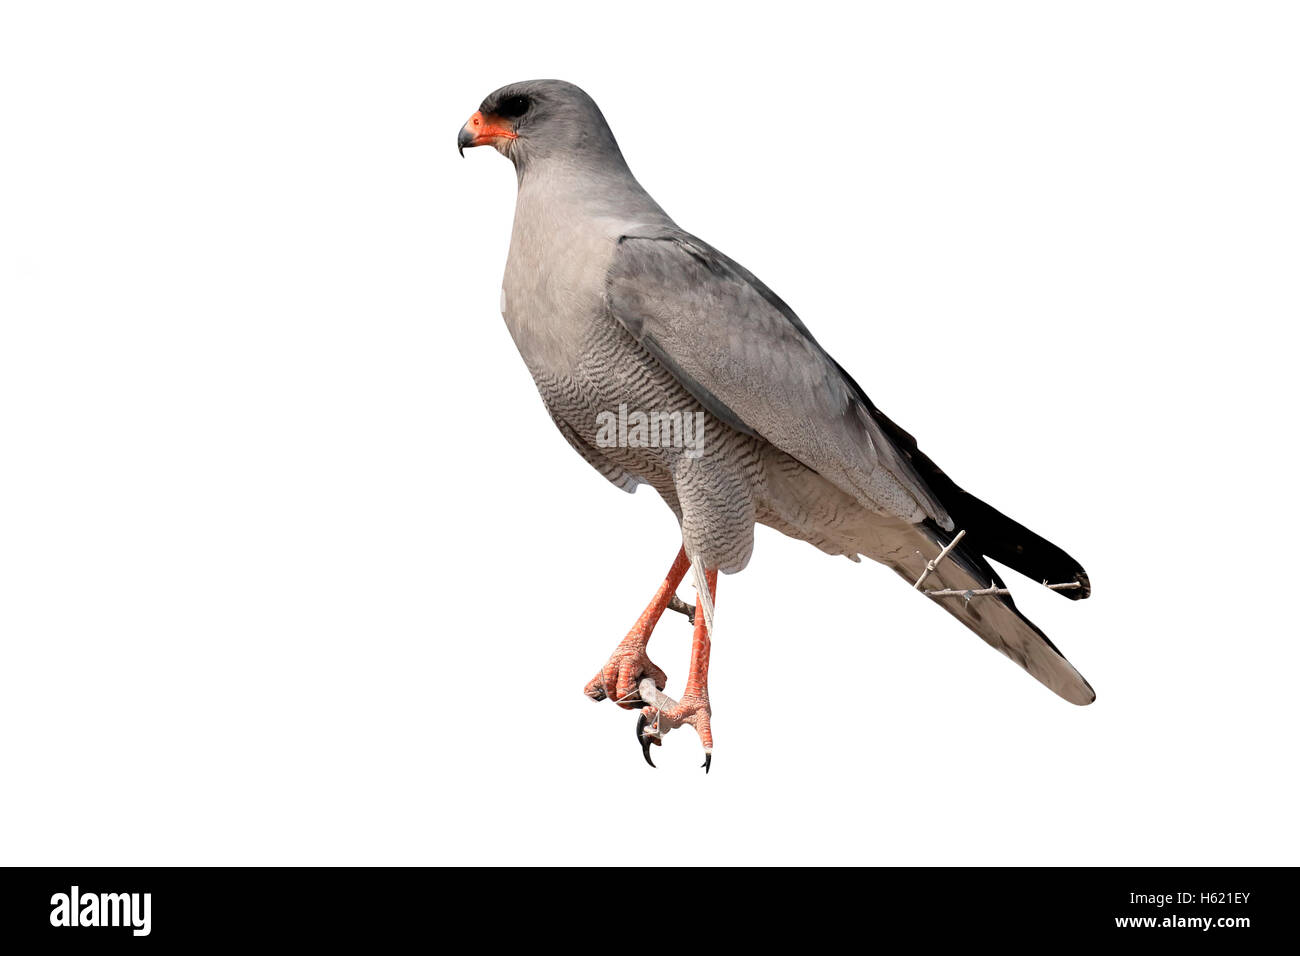 Pale chanting-goshawk, Melierax canorus, single bird on branch, South Africa, August 2016 - Stock Image